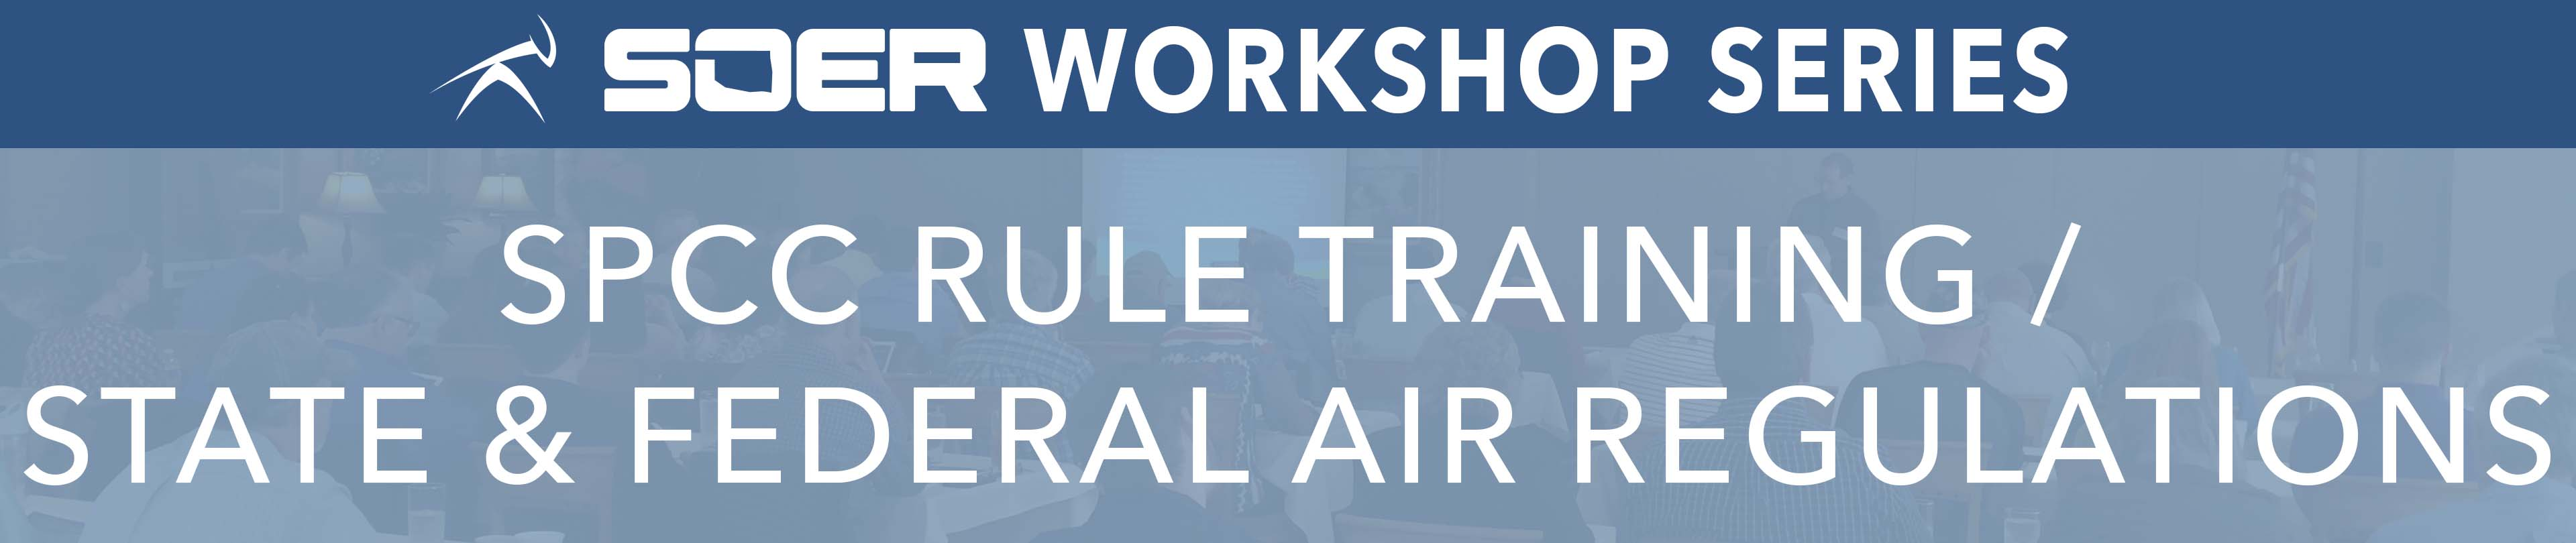 SOER- SPCC Training and State & Federal Air Regulations (OKC)